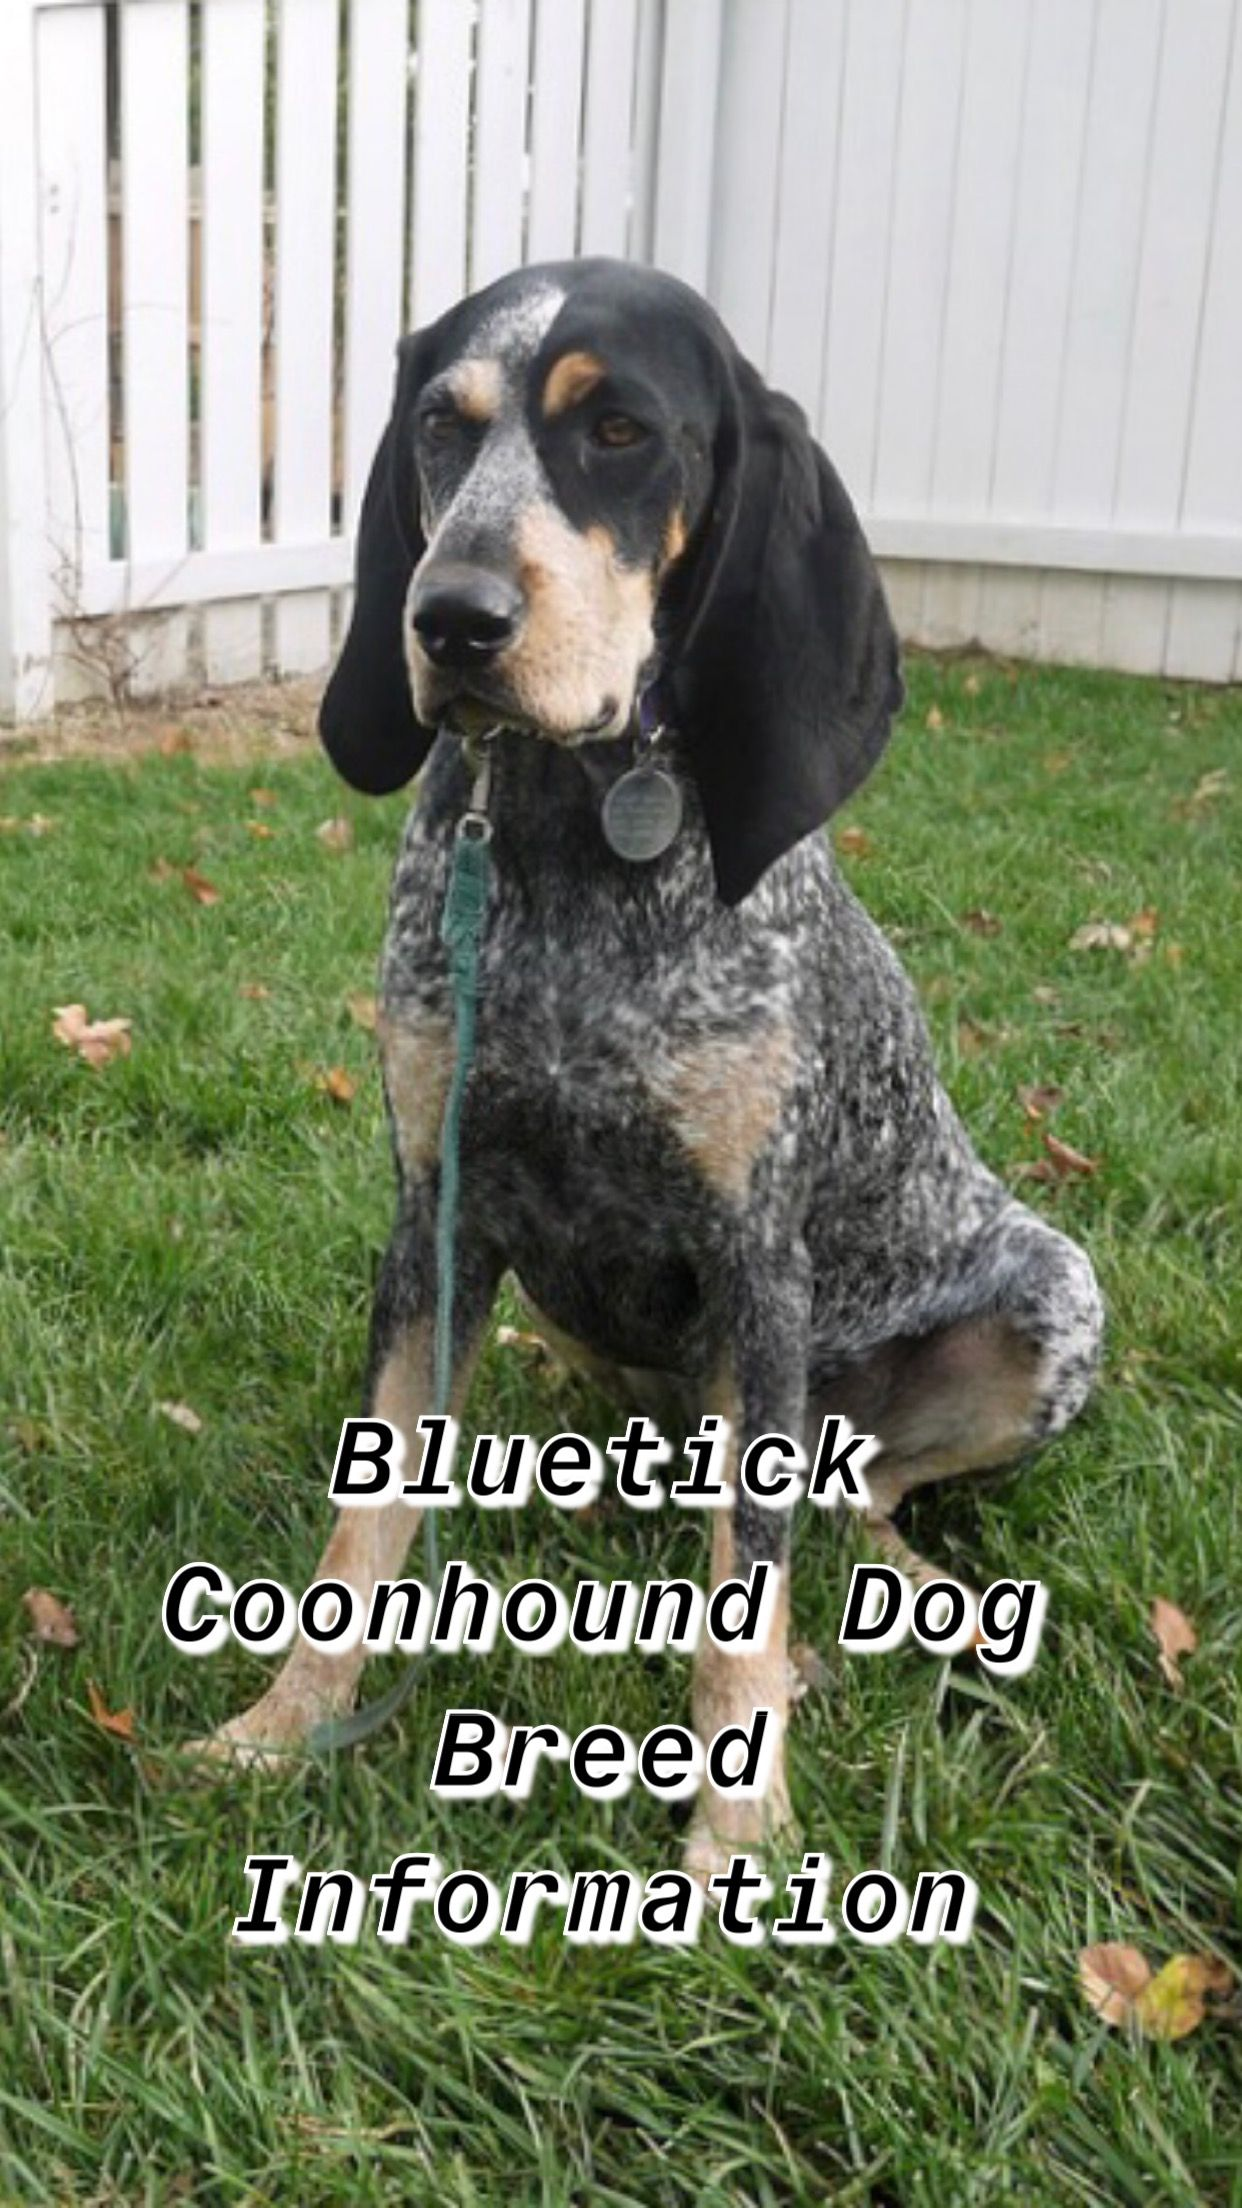 Ultimate Bluetick Coonhound Breed Information Bluetick Coonhound